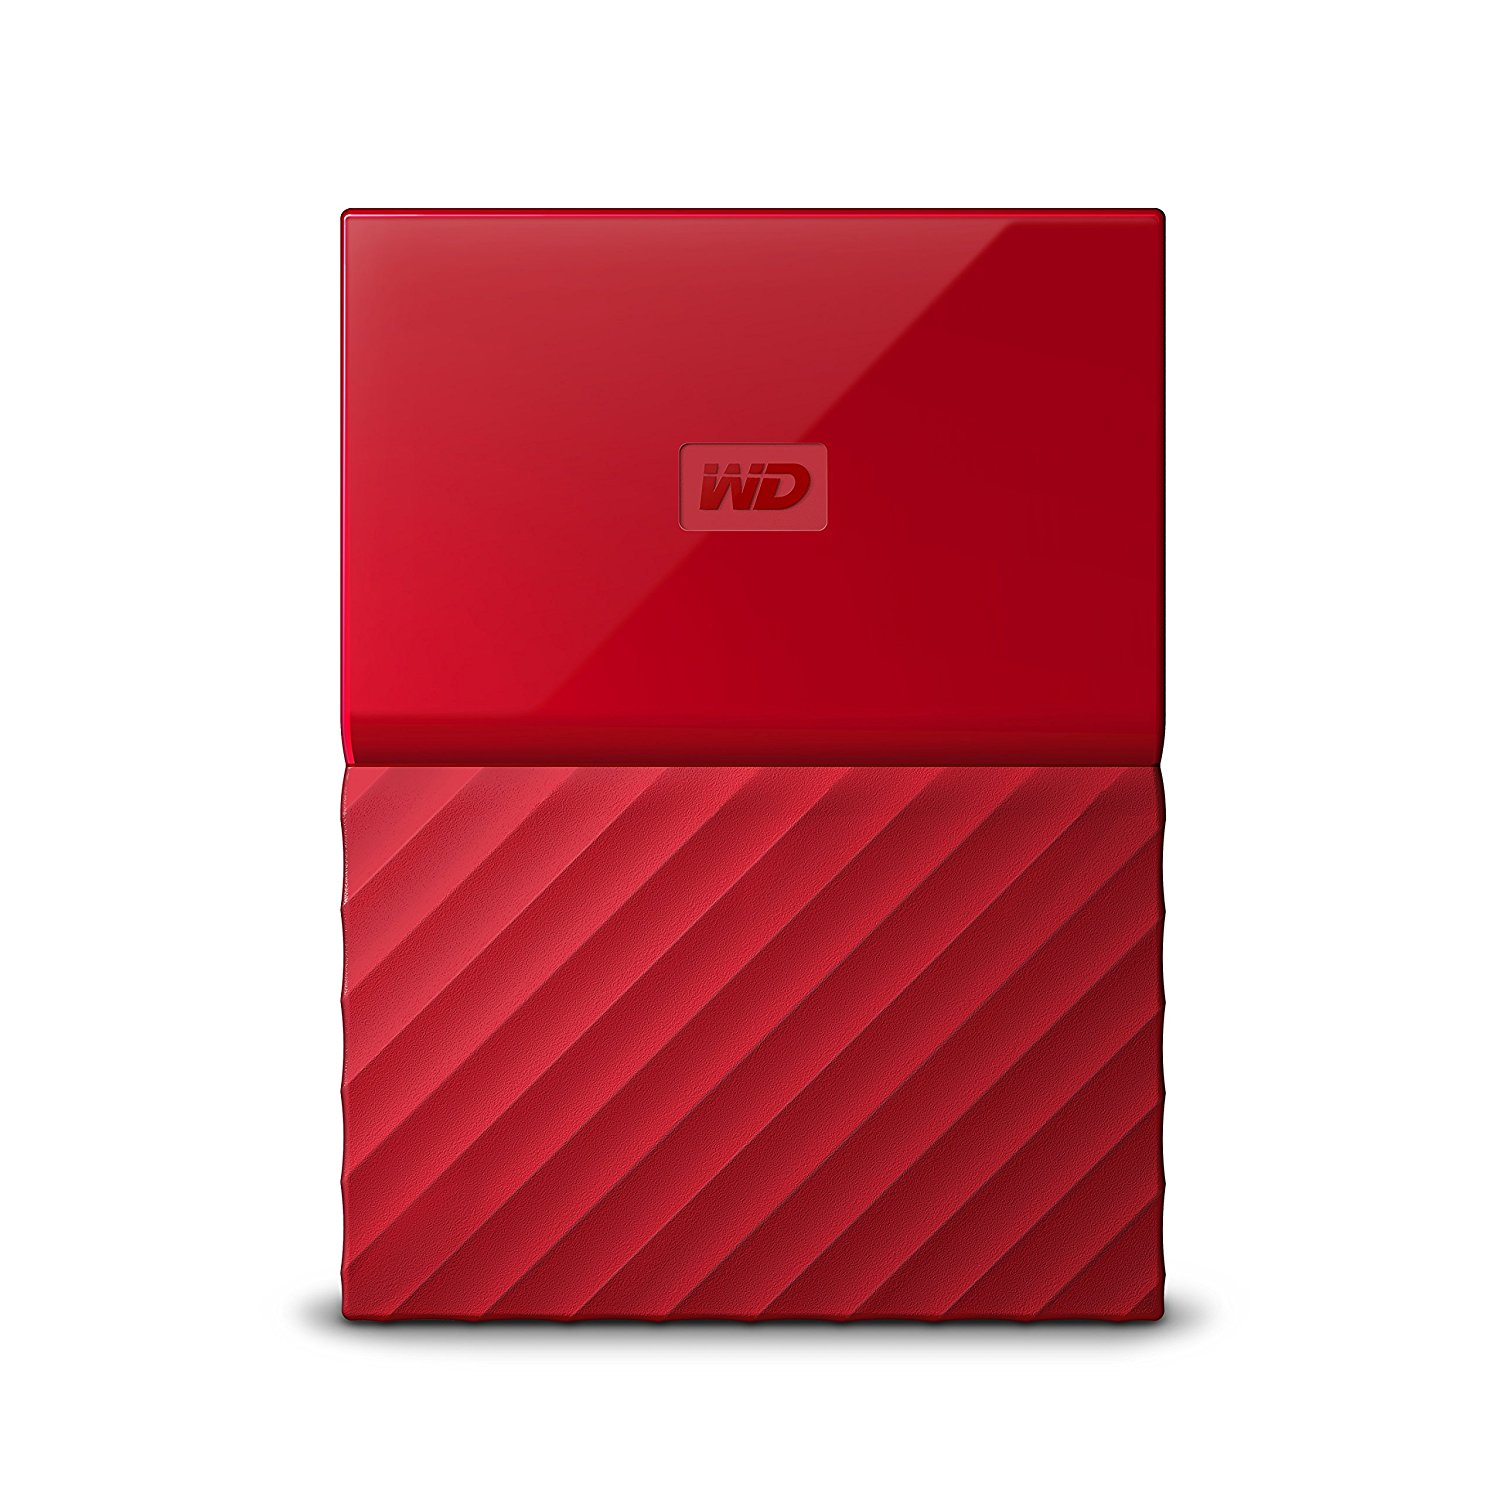 Western Digital My Passport 2TB Red External Hard Drive